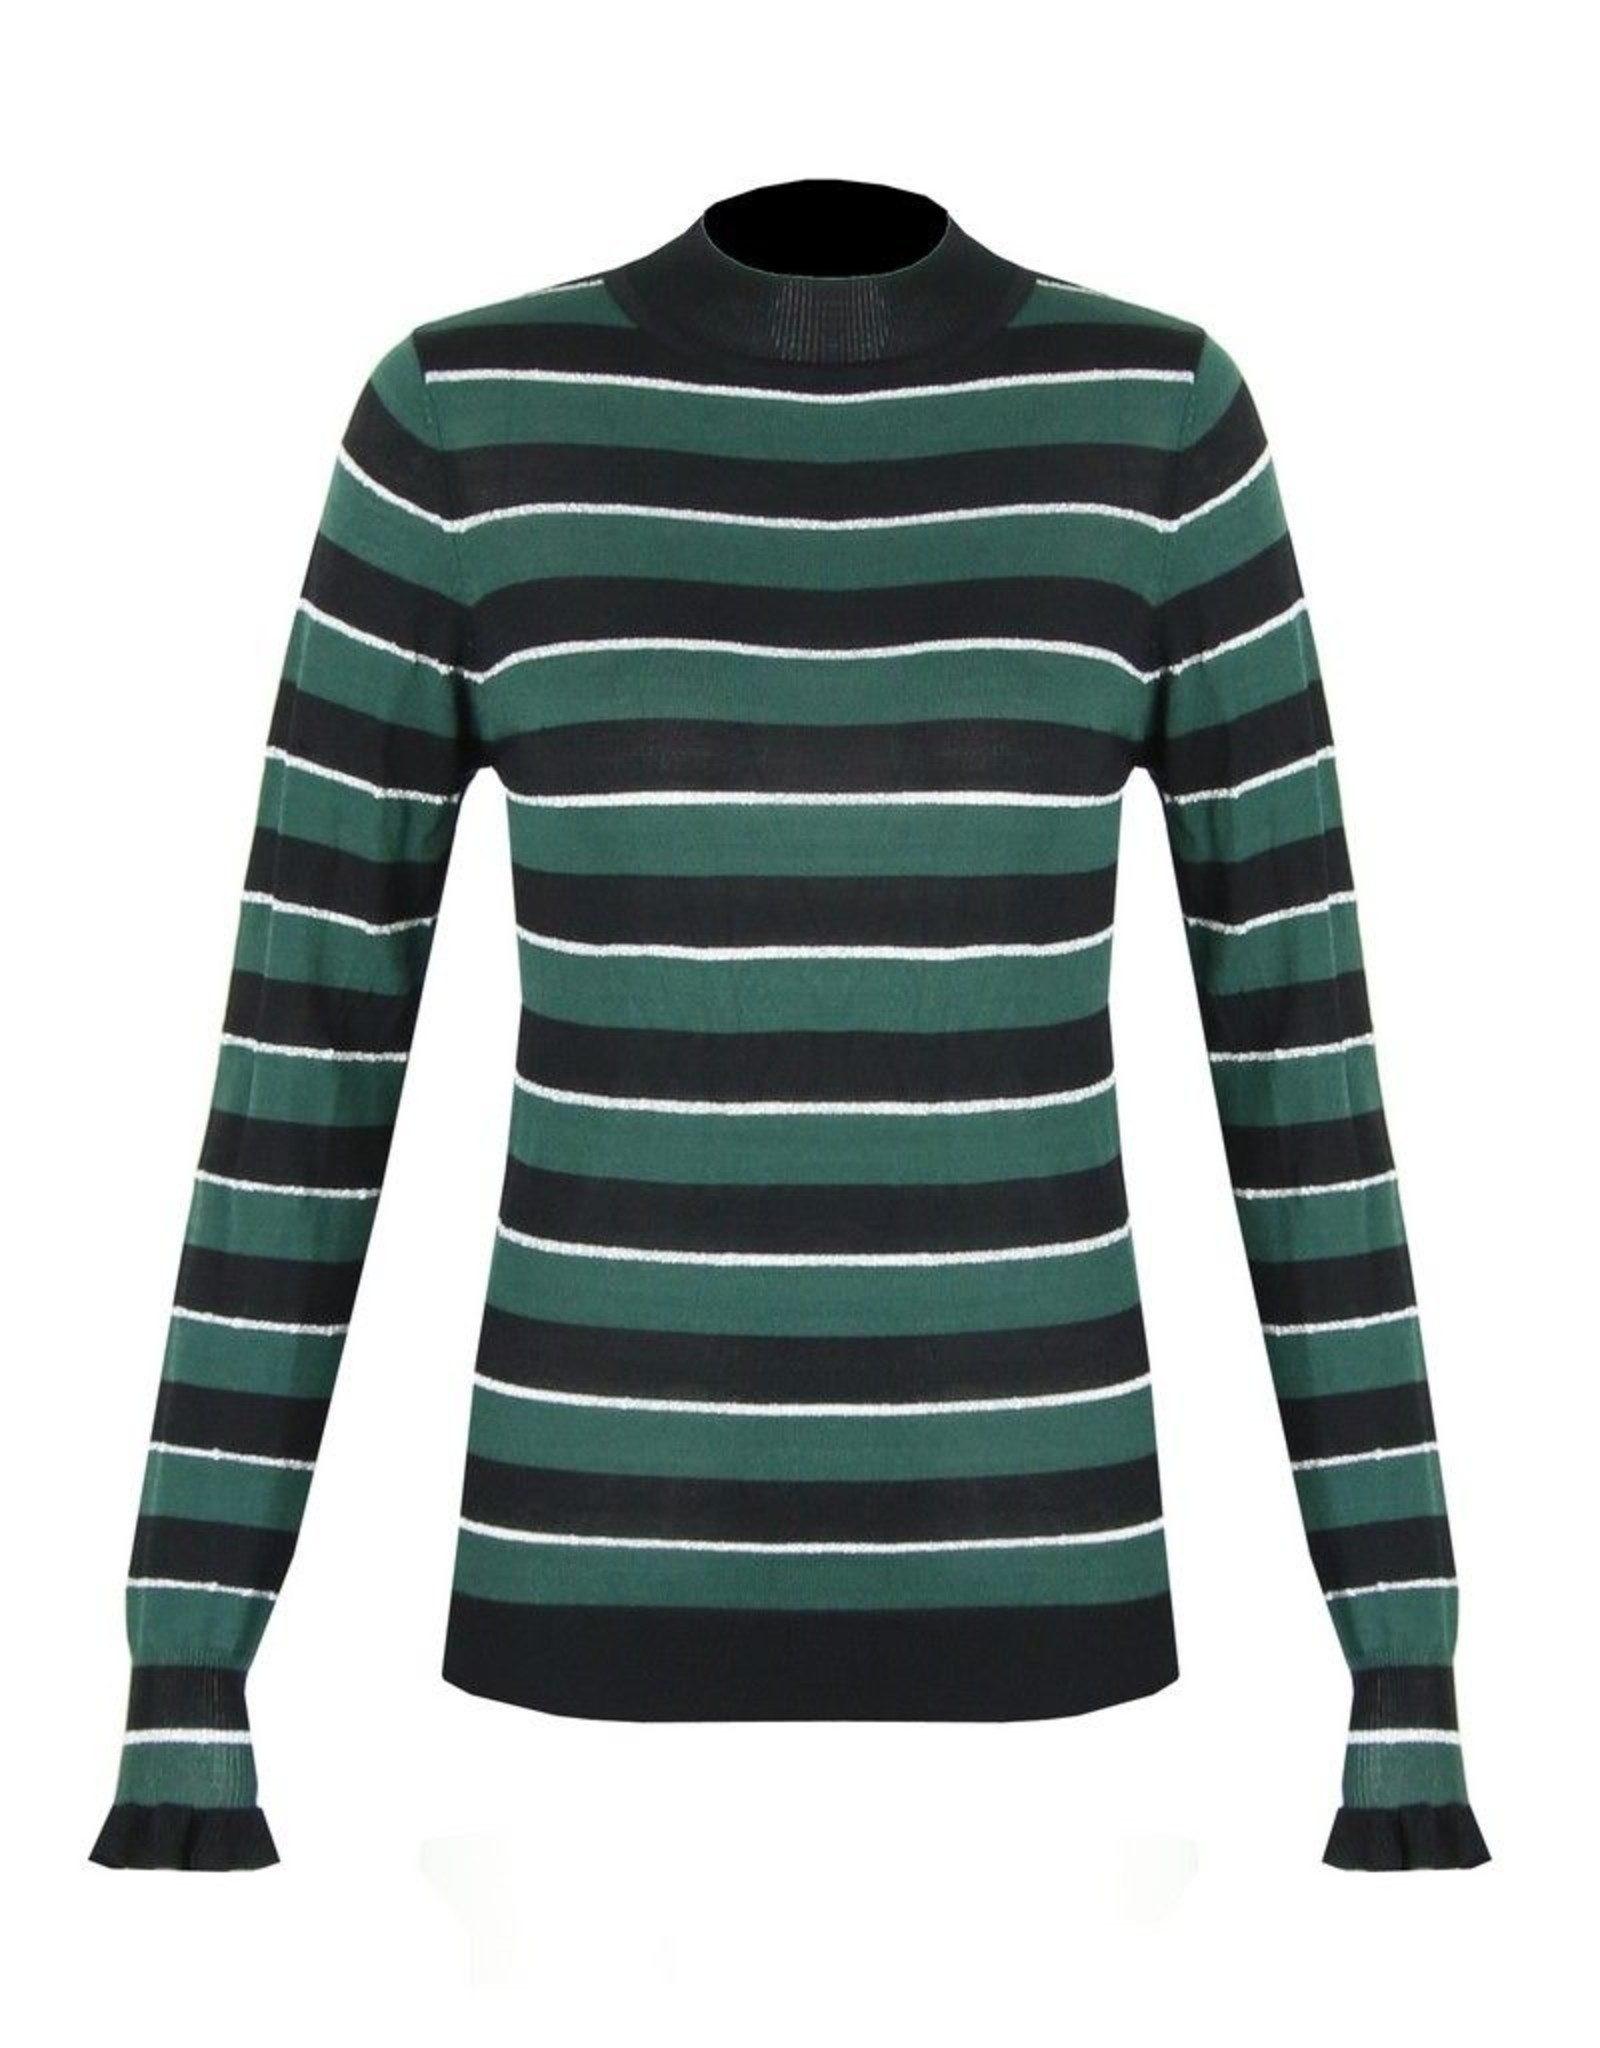 C&S Sweater Green with Black Stripes